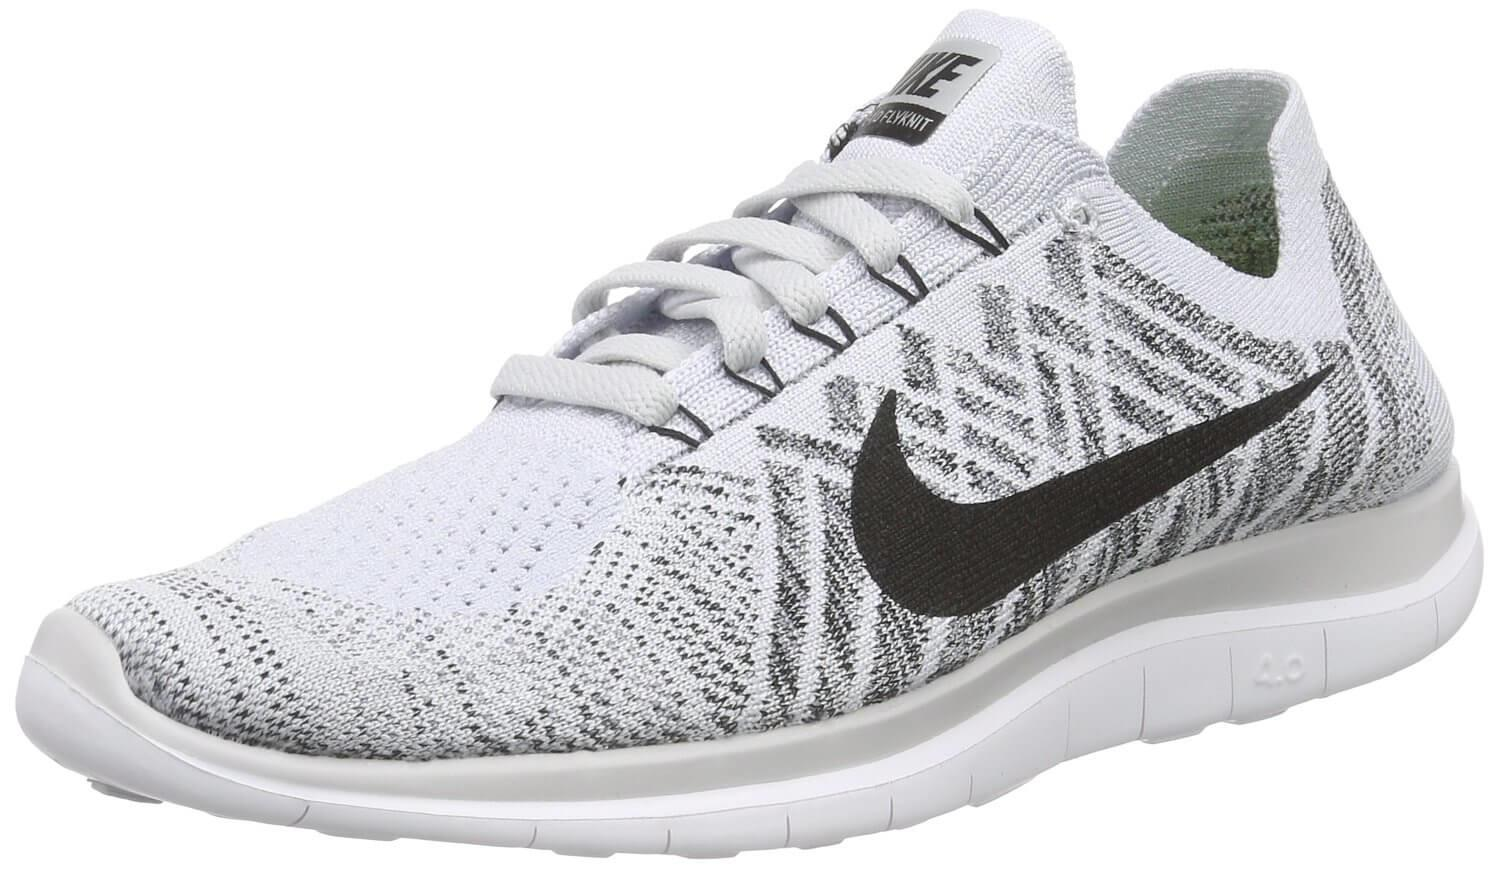 Tidssvarende Nike Free Flyknit 4.0 Review - Buy or Not in Sep 2019? ZG-72